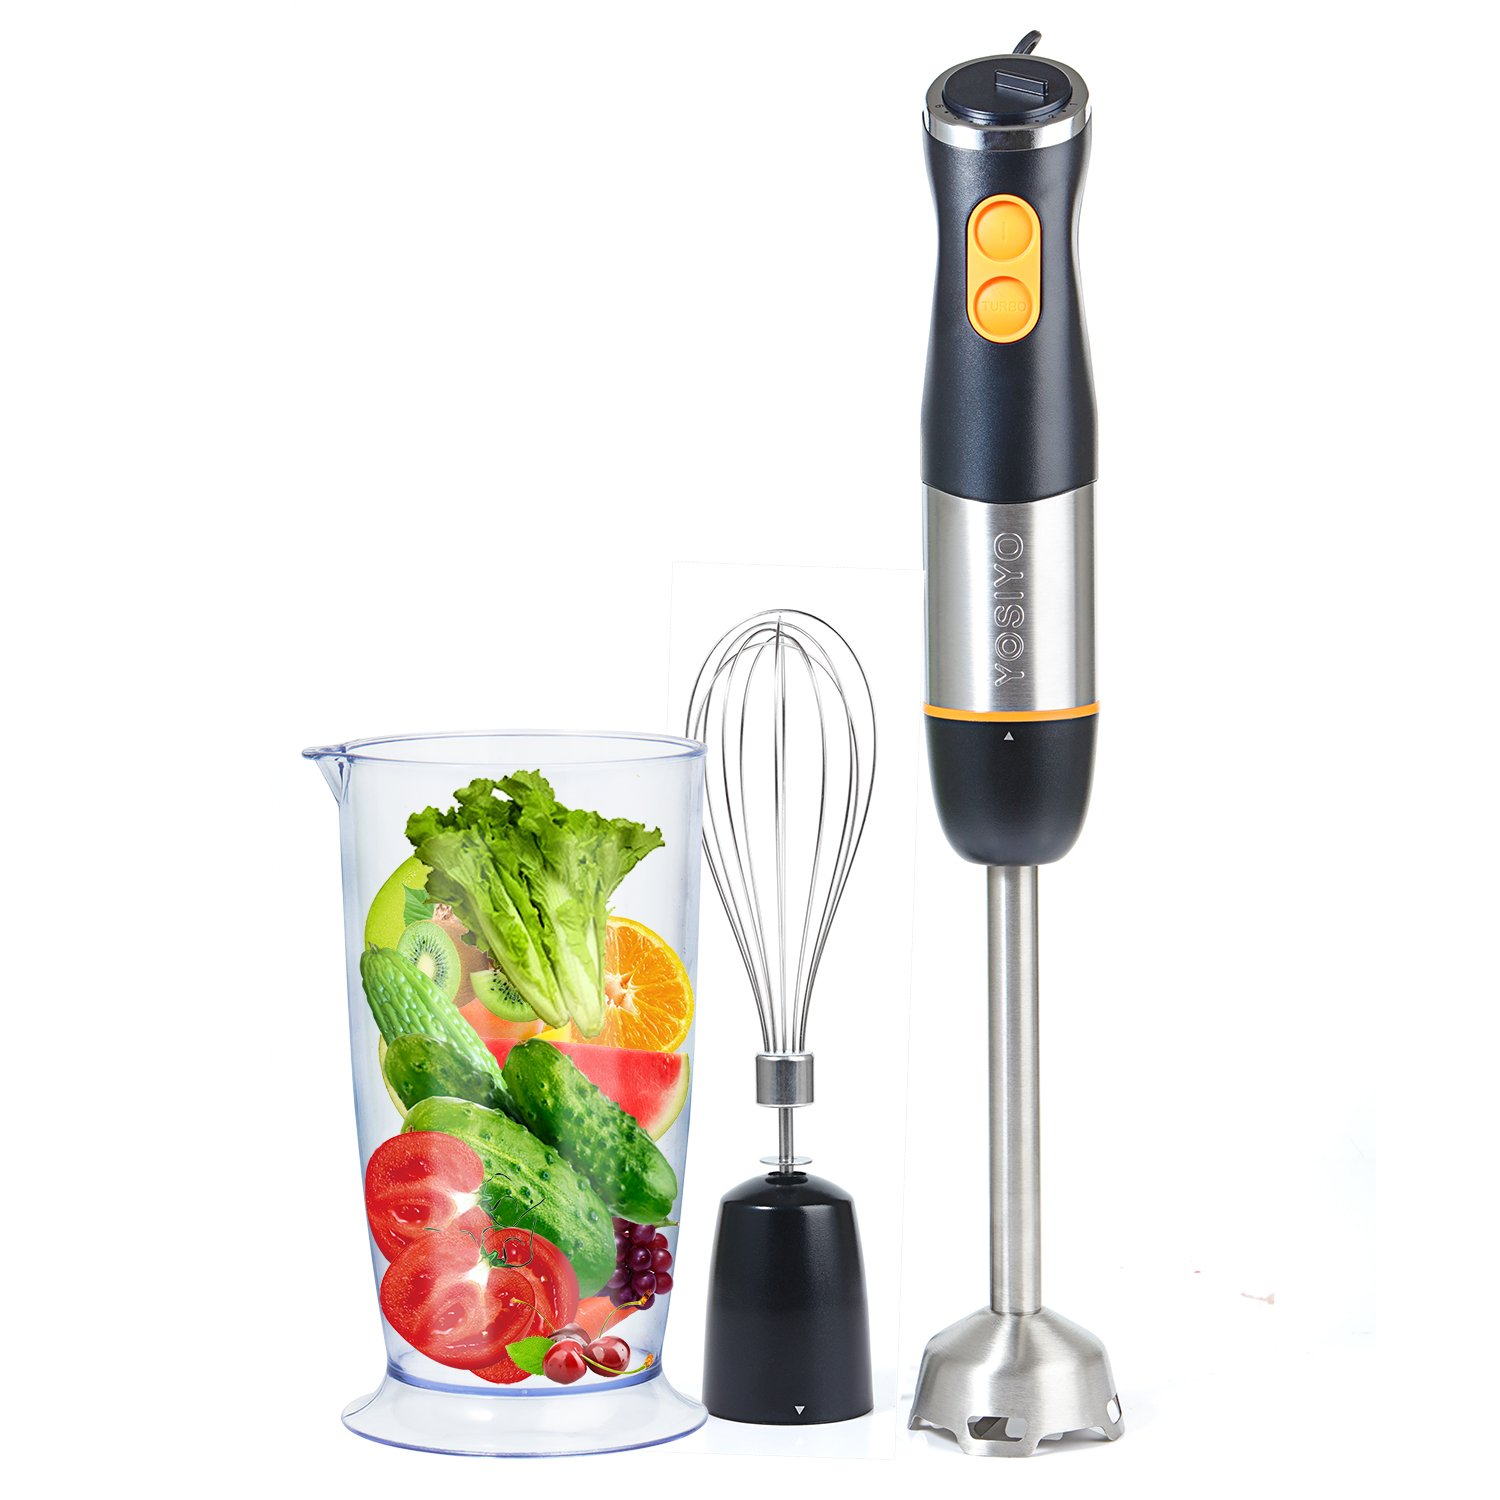 Hand Held Blender Stick 3-in-1 Set with Stainless Steel Blades and 2+6 Speed Control Includes Egg Whisk and Beaker Attachment for Soup, Smoothies, Juicer, Baby Food- Black